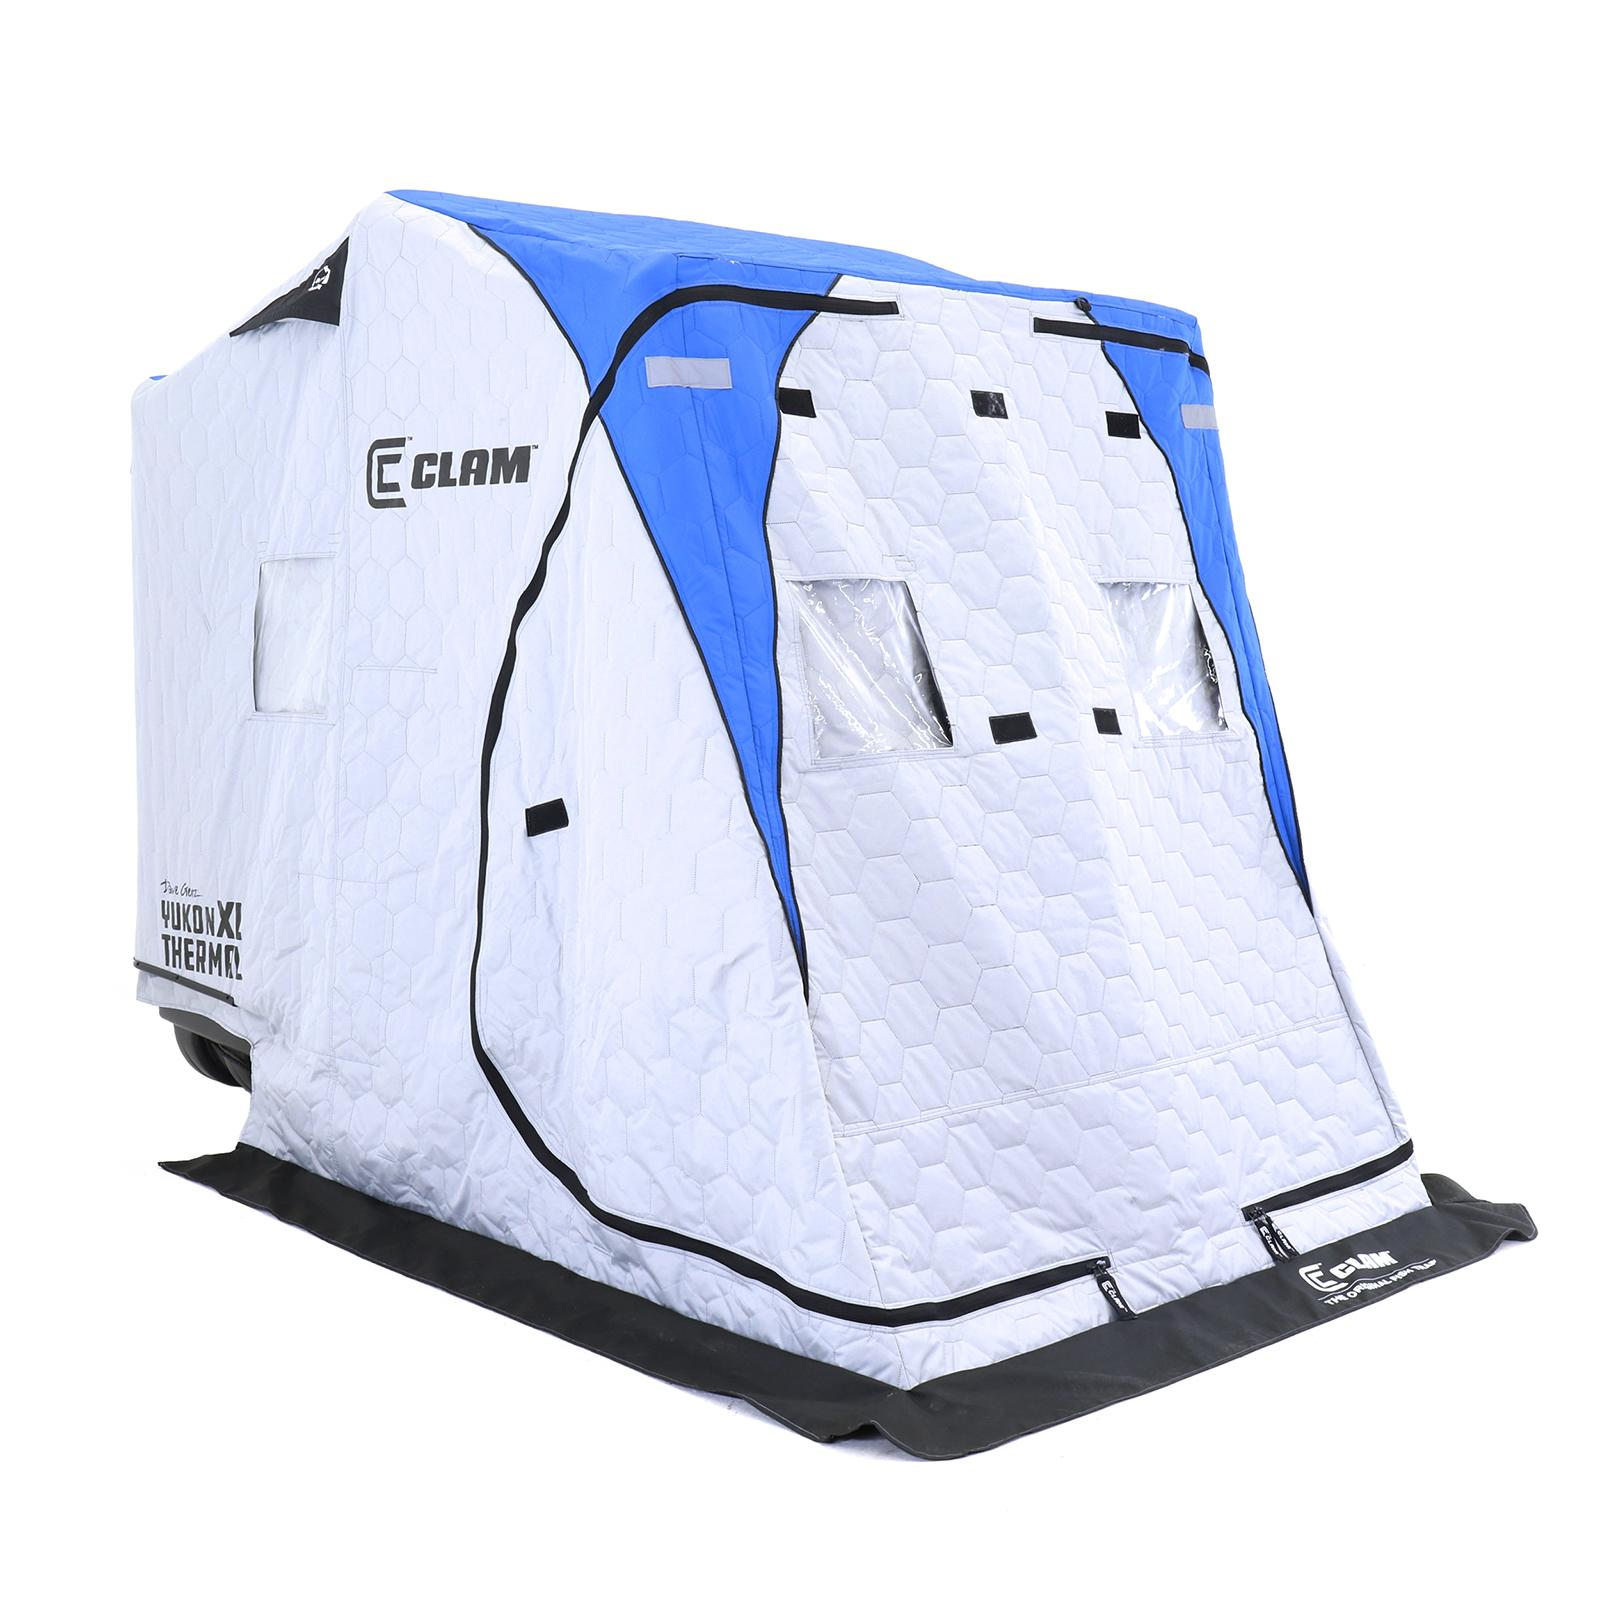 Clam Yukon XL Thermal Ice Shelter Left Angle Side with Cover Closed